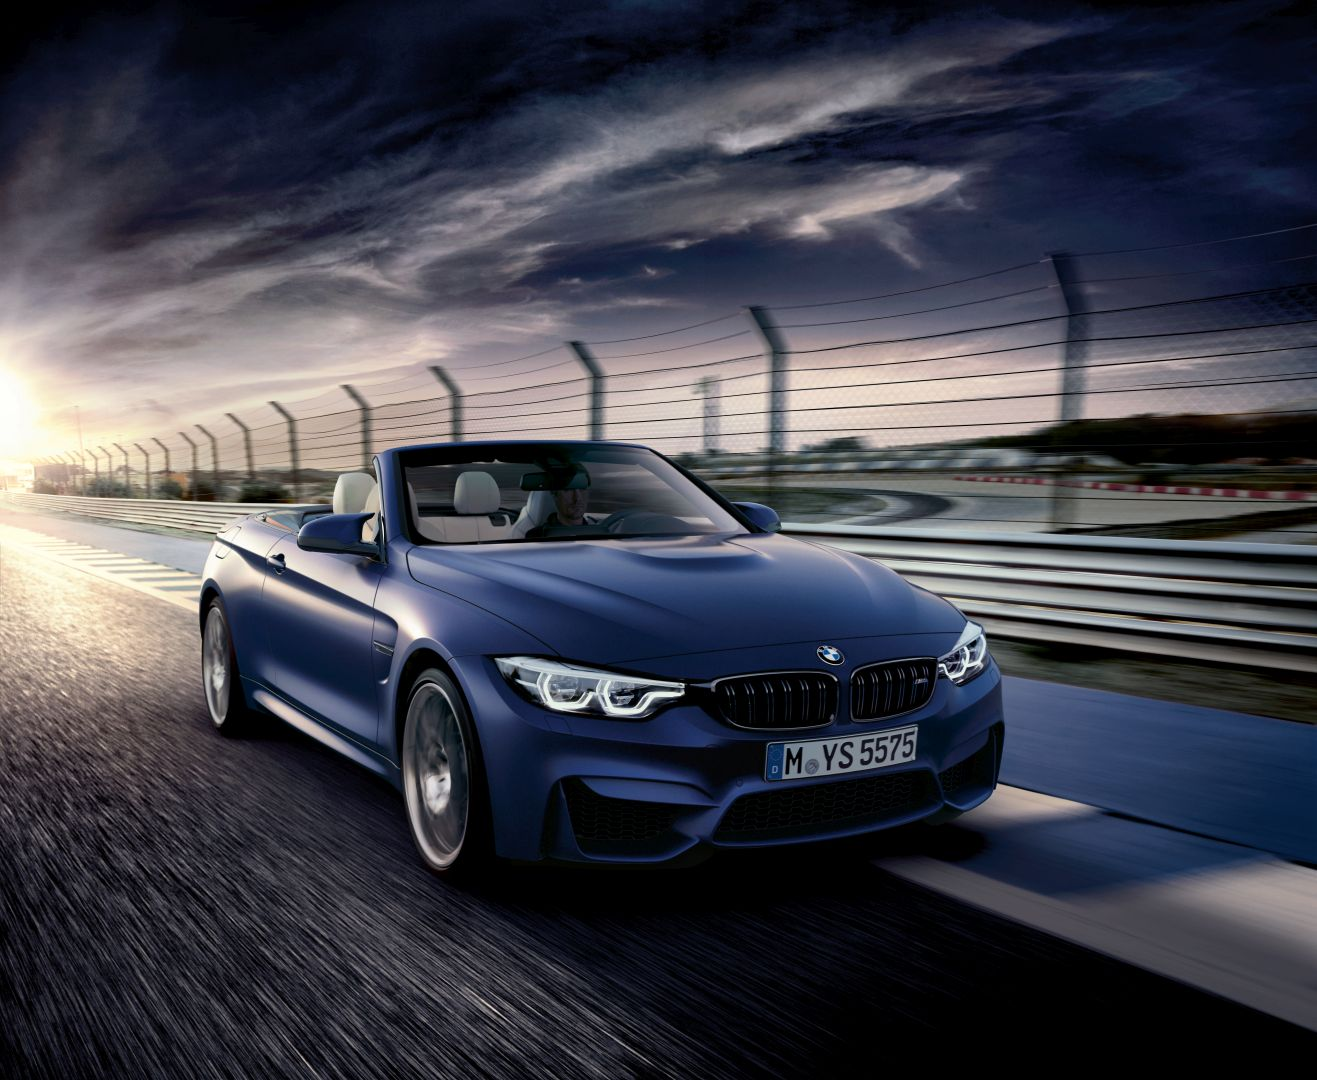 BMW 4 Series Convertible seen with Top Up and Down ...